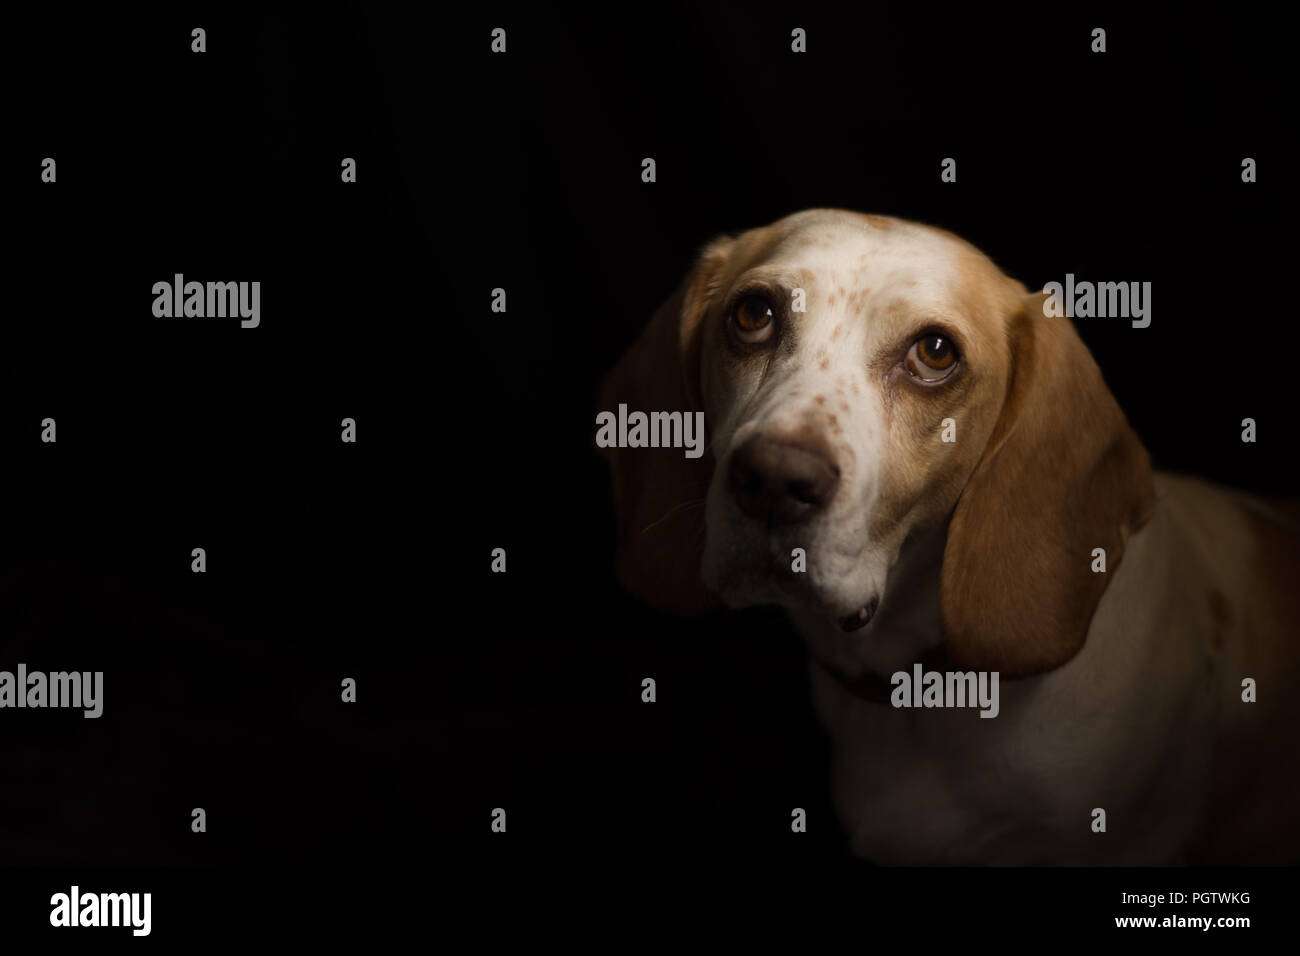 white and tan medium sized dog looking up with big brown eyes with a black back ground Stock Photo